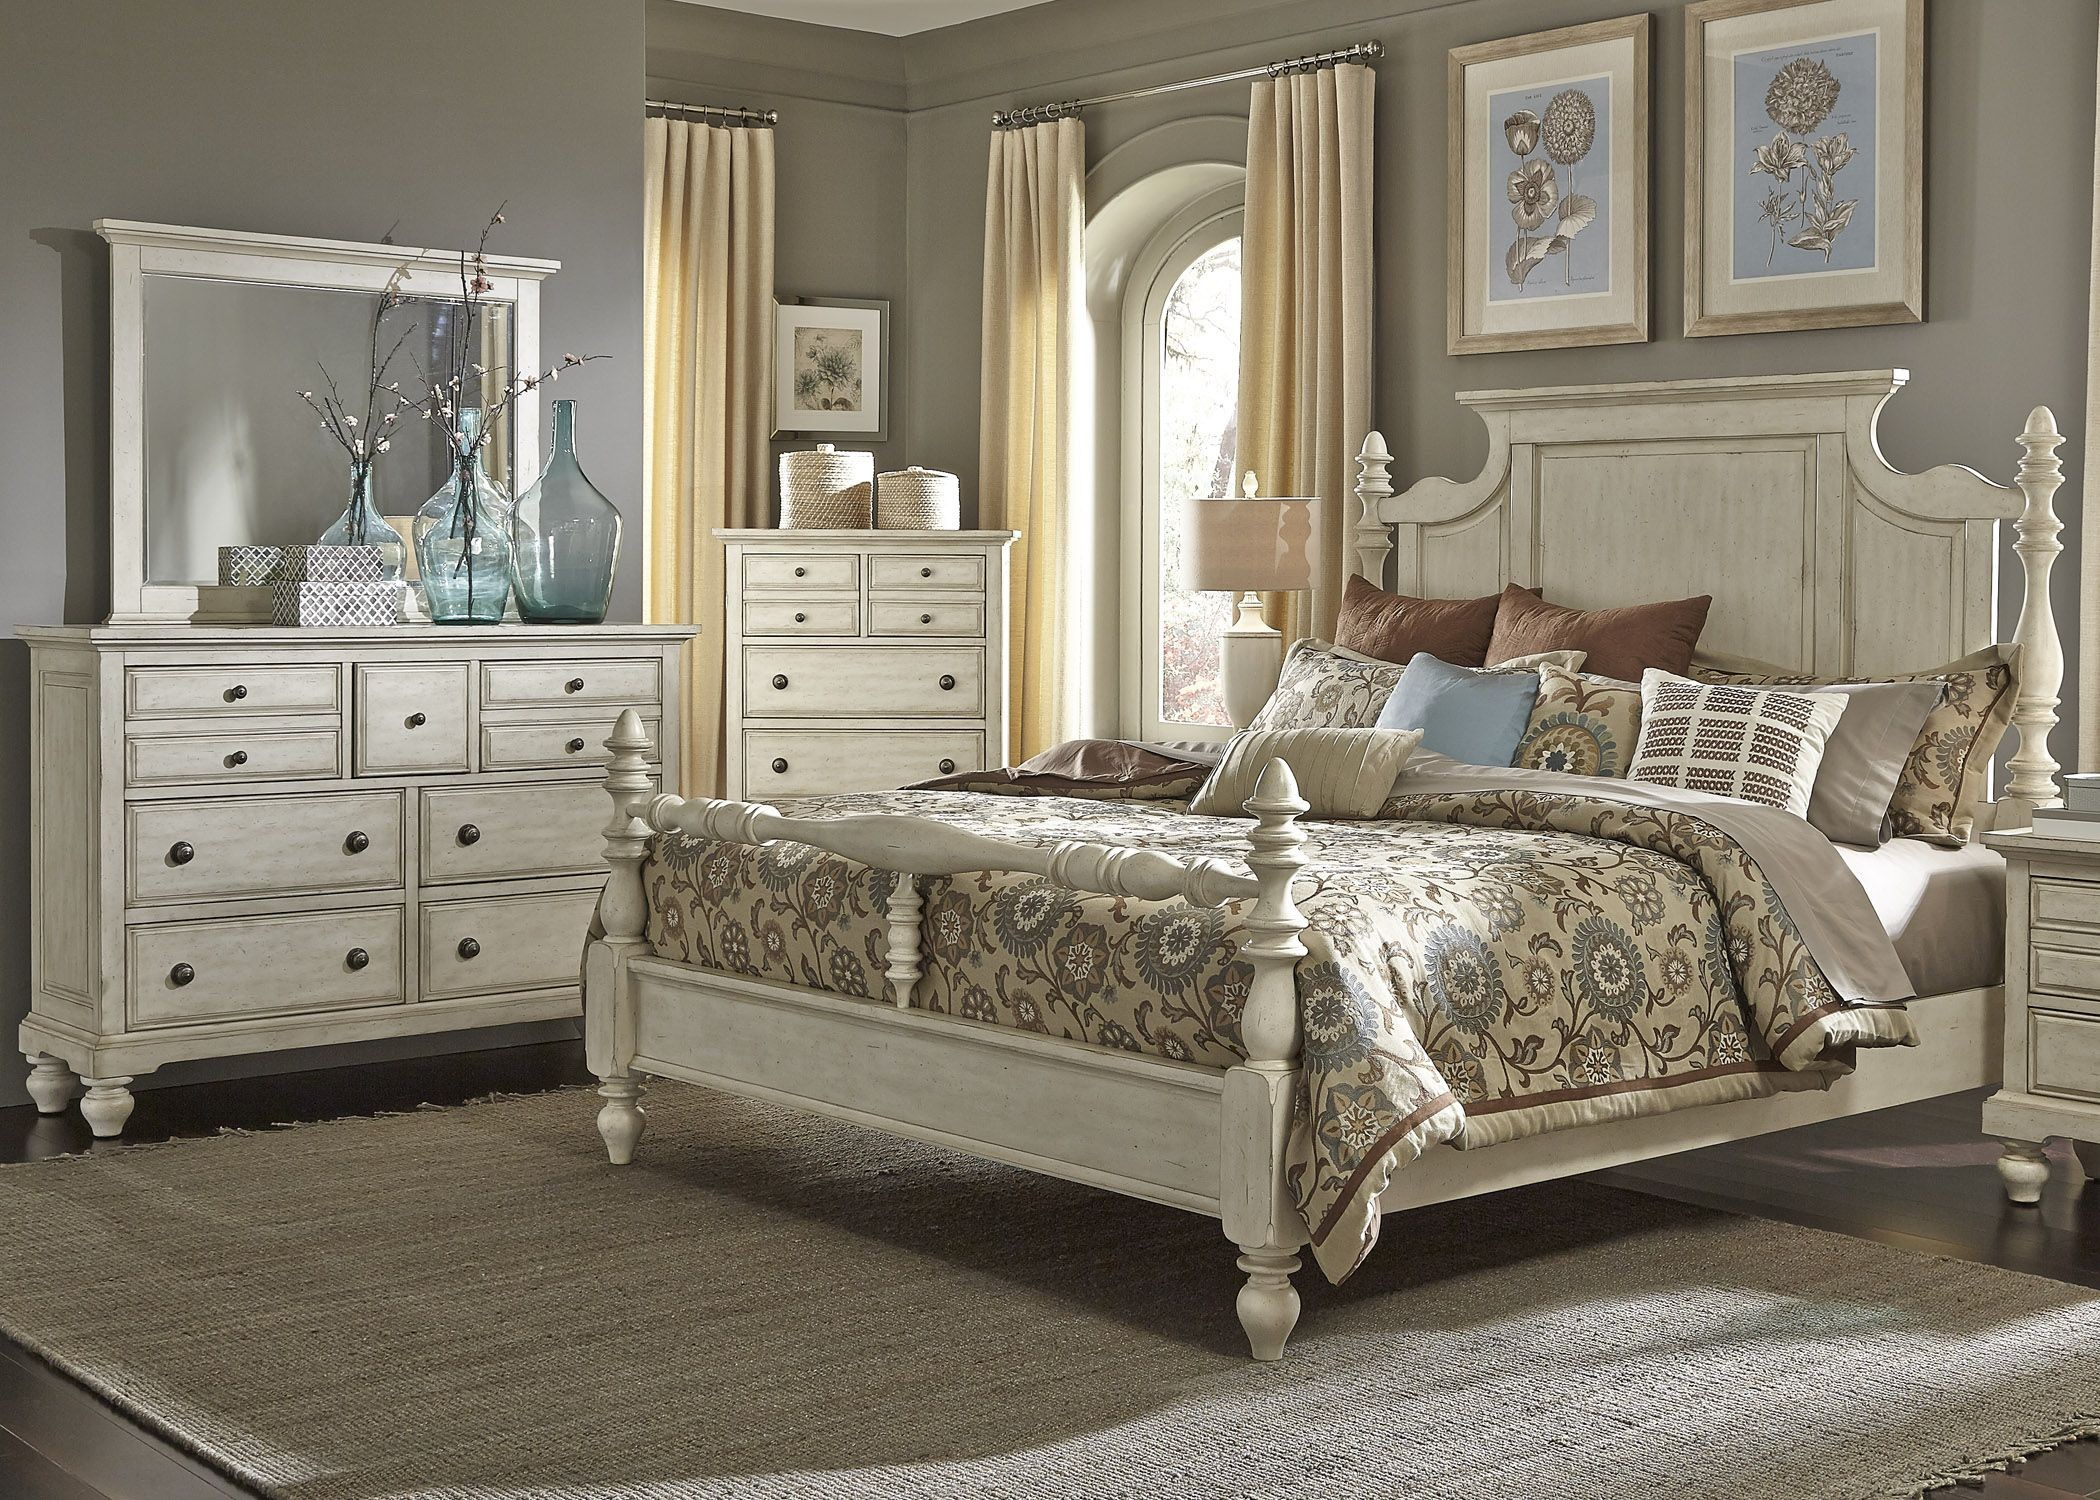 liberty bedroom furniture high country white poster bedroom set from liberty 697 br 12082